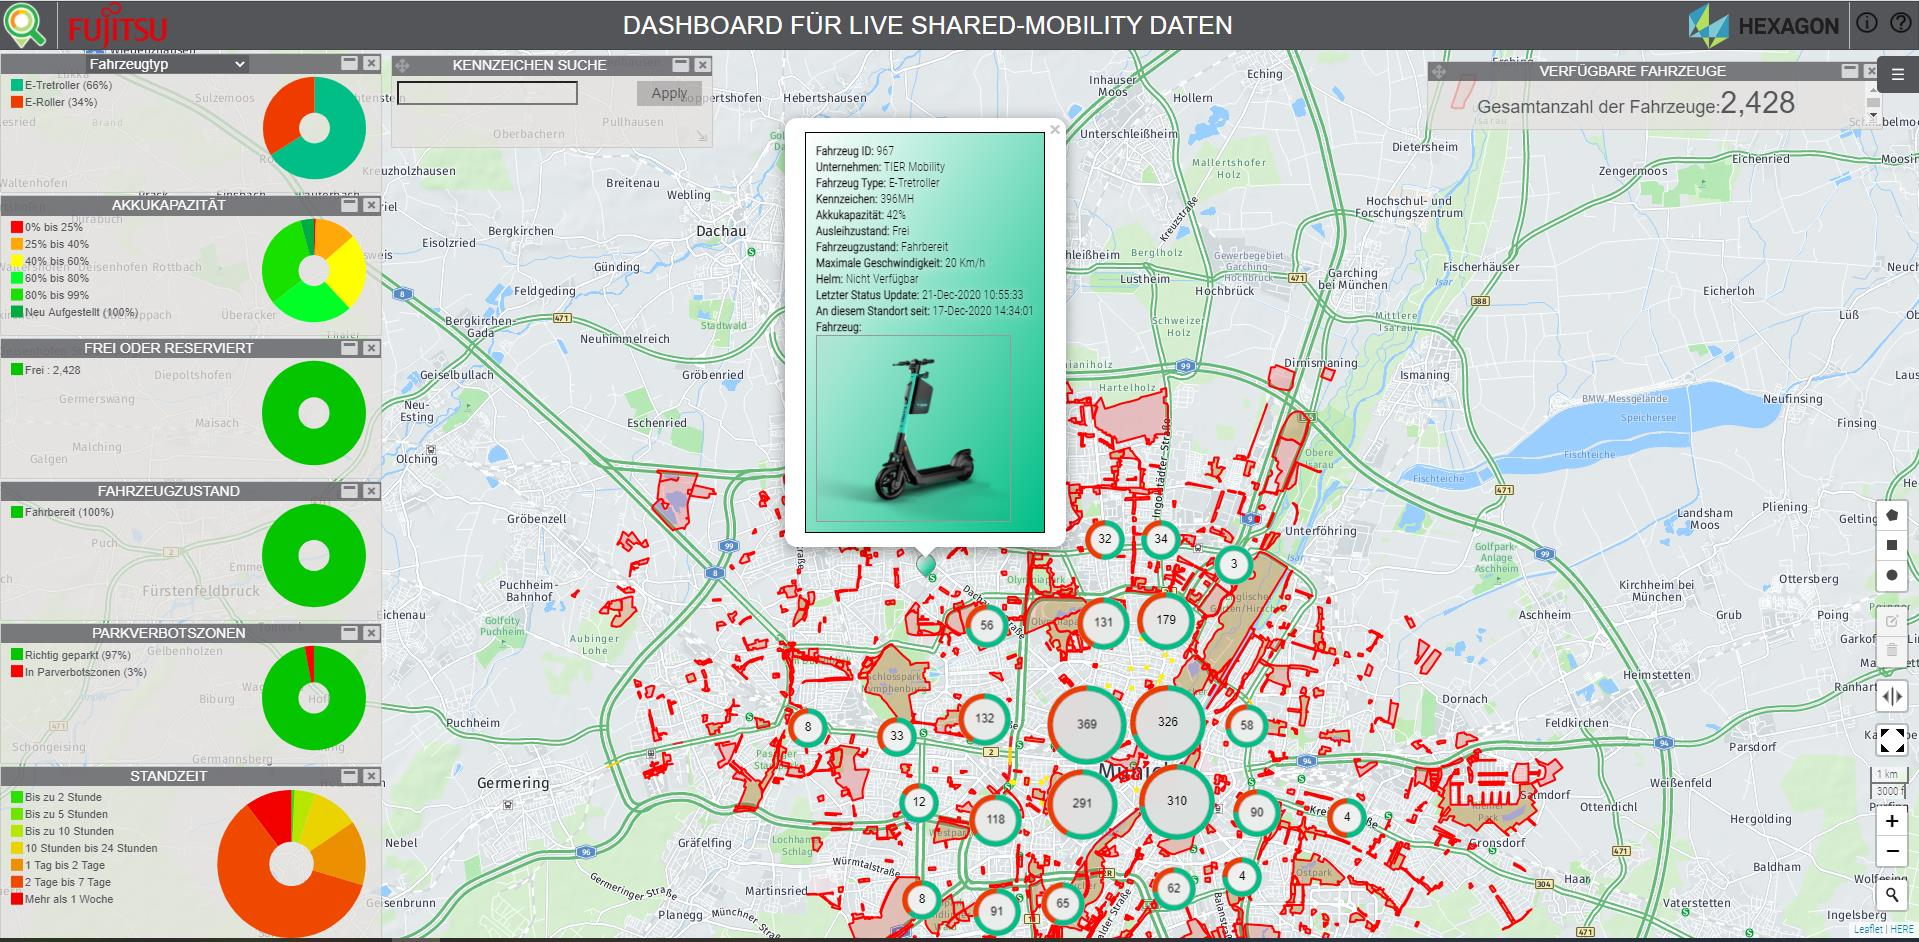 Smart-Monitoring-Ecosystem: Live Shared-Mobility Daten